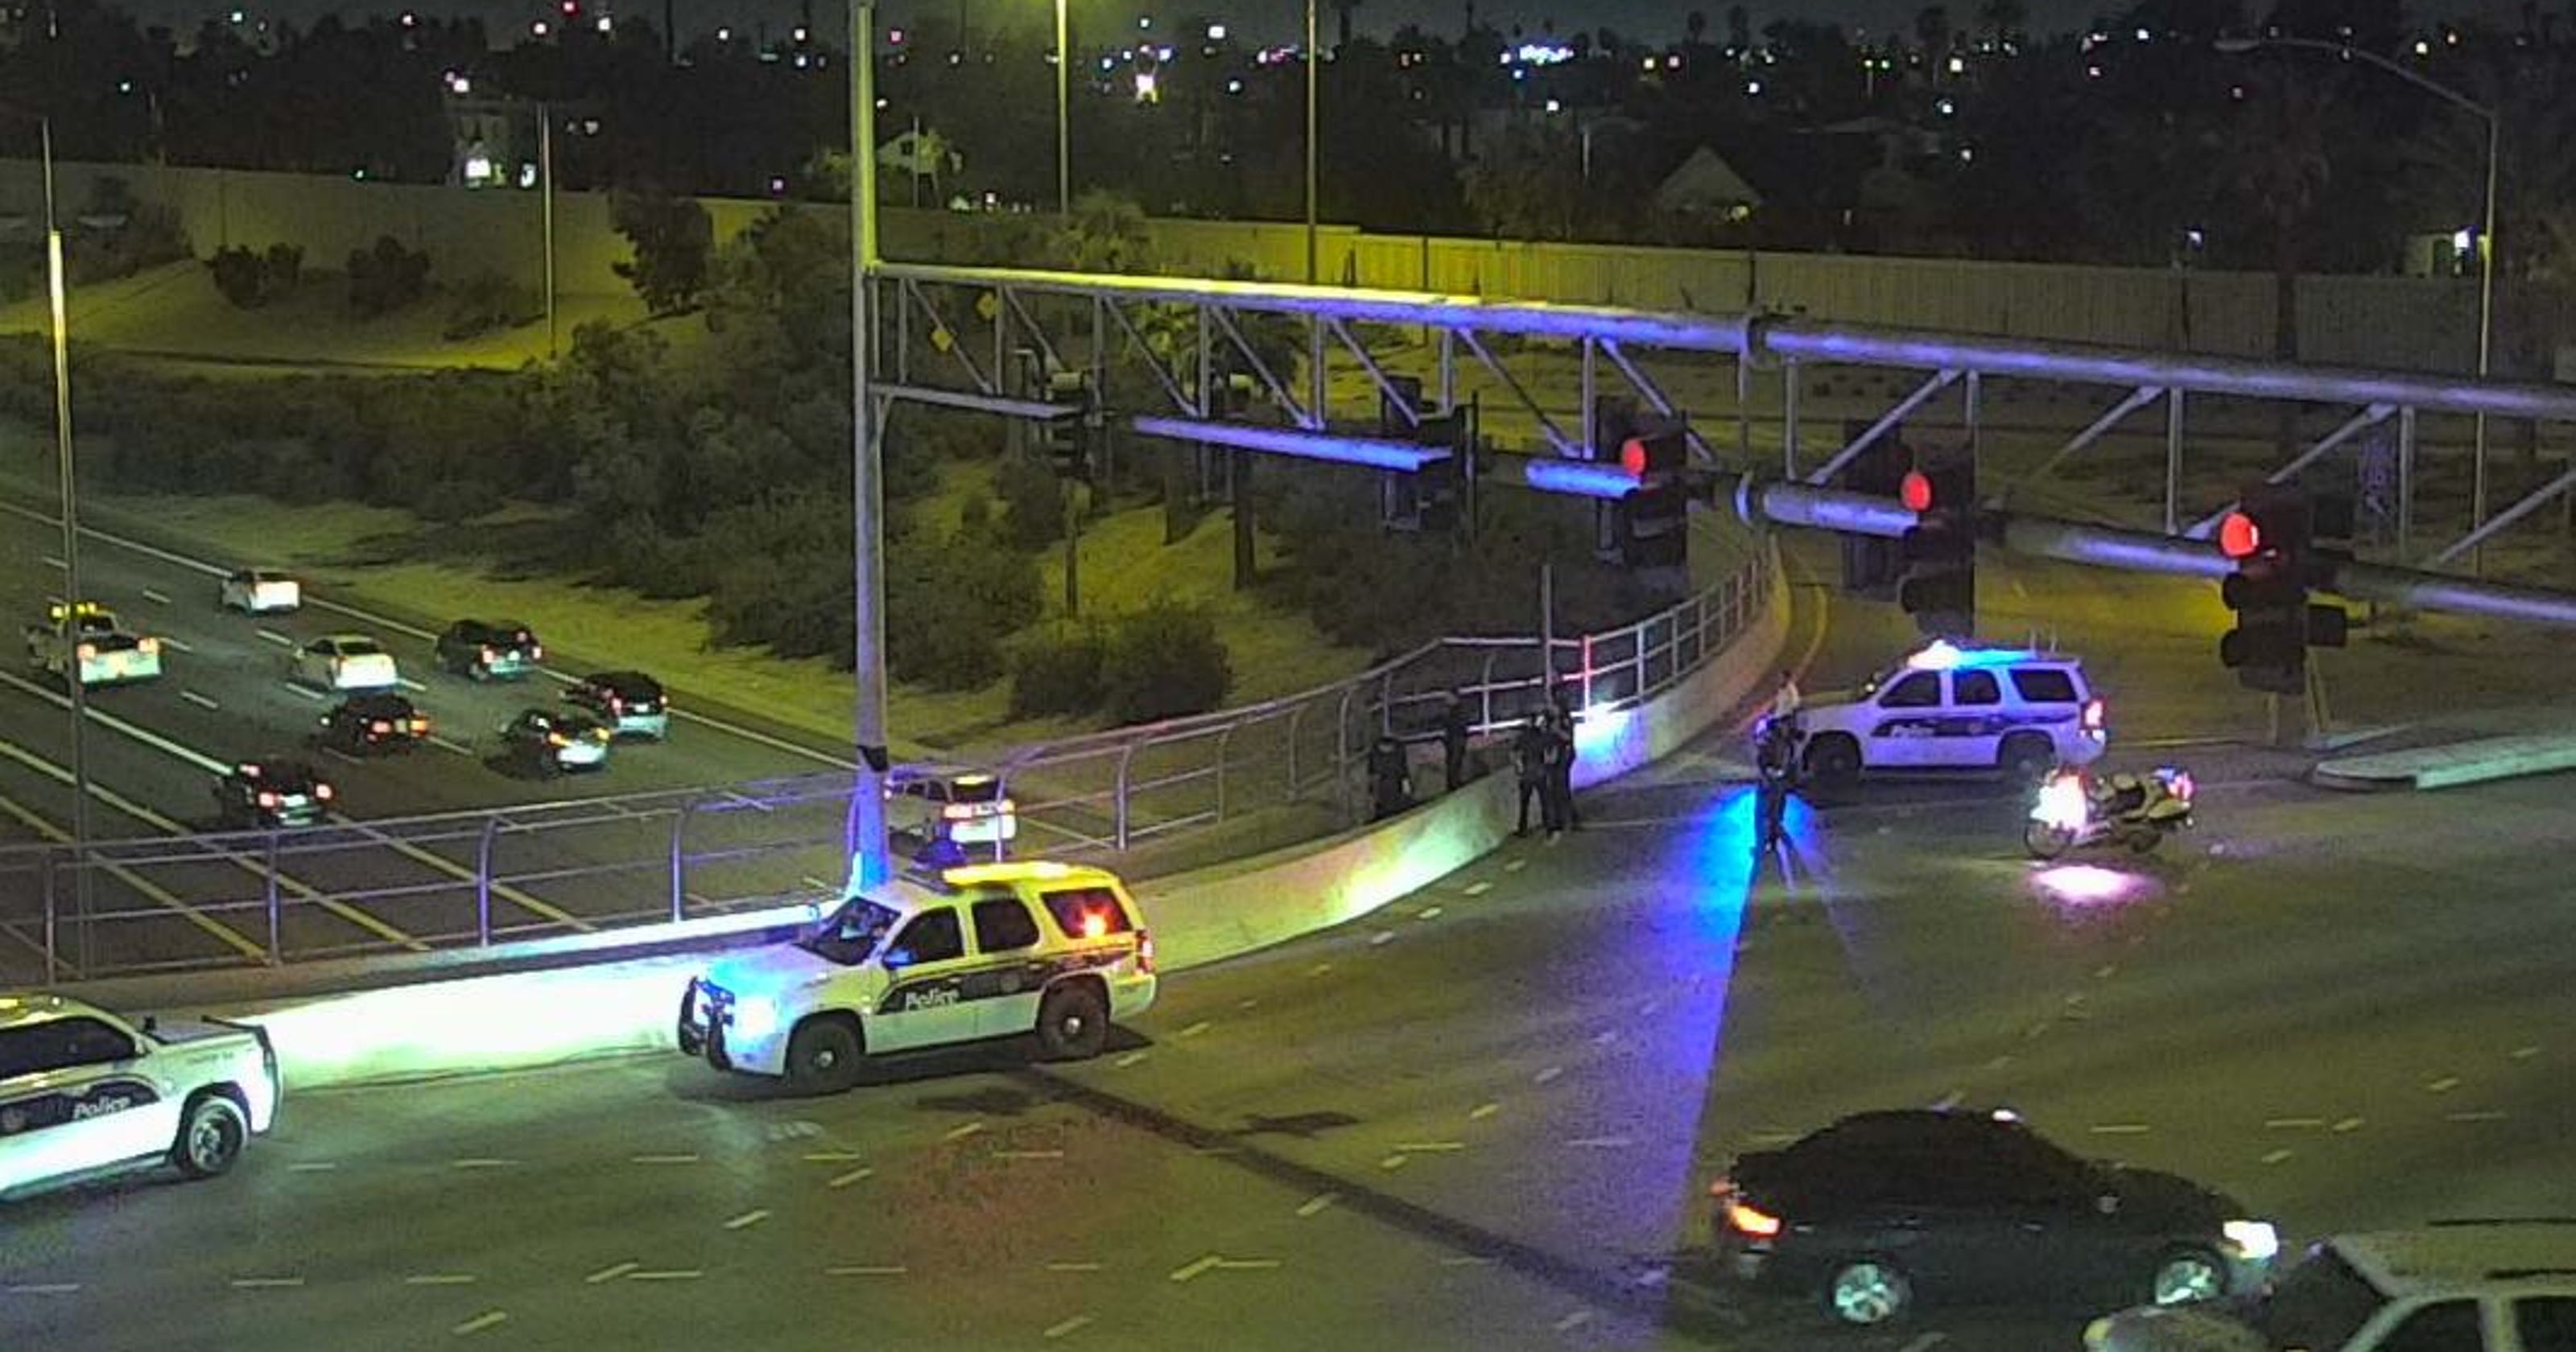 Interstate 10 reopens in central Phoenix after police situation